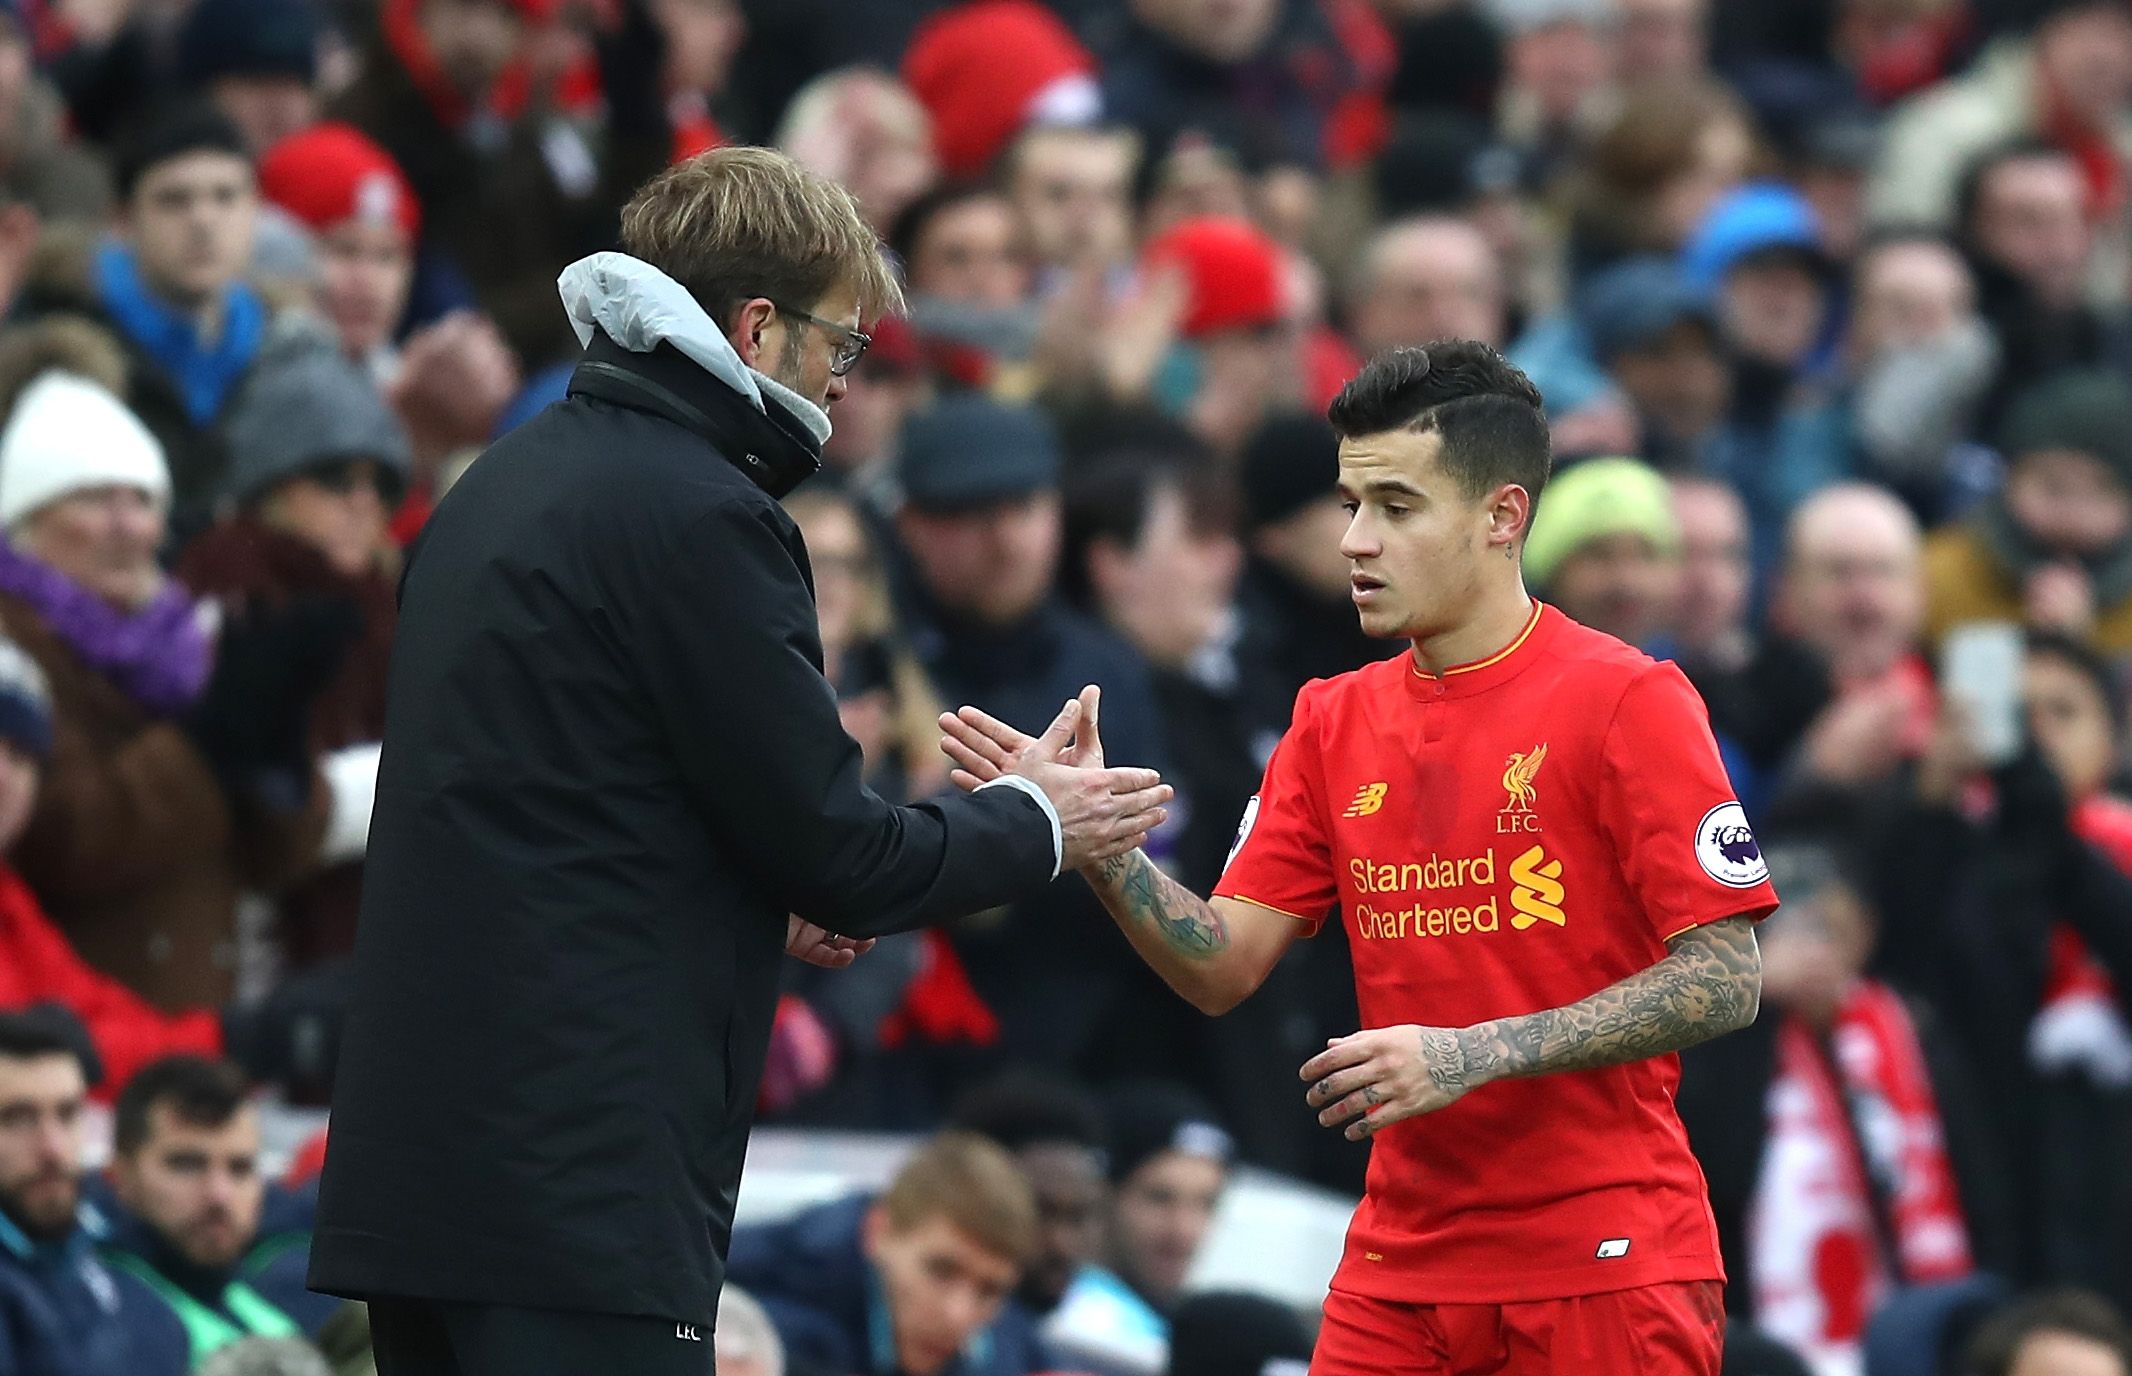 Liverpool manager Jurgen Klopp, left, with Philippe Coutinho.